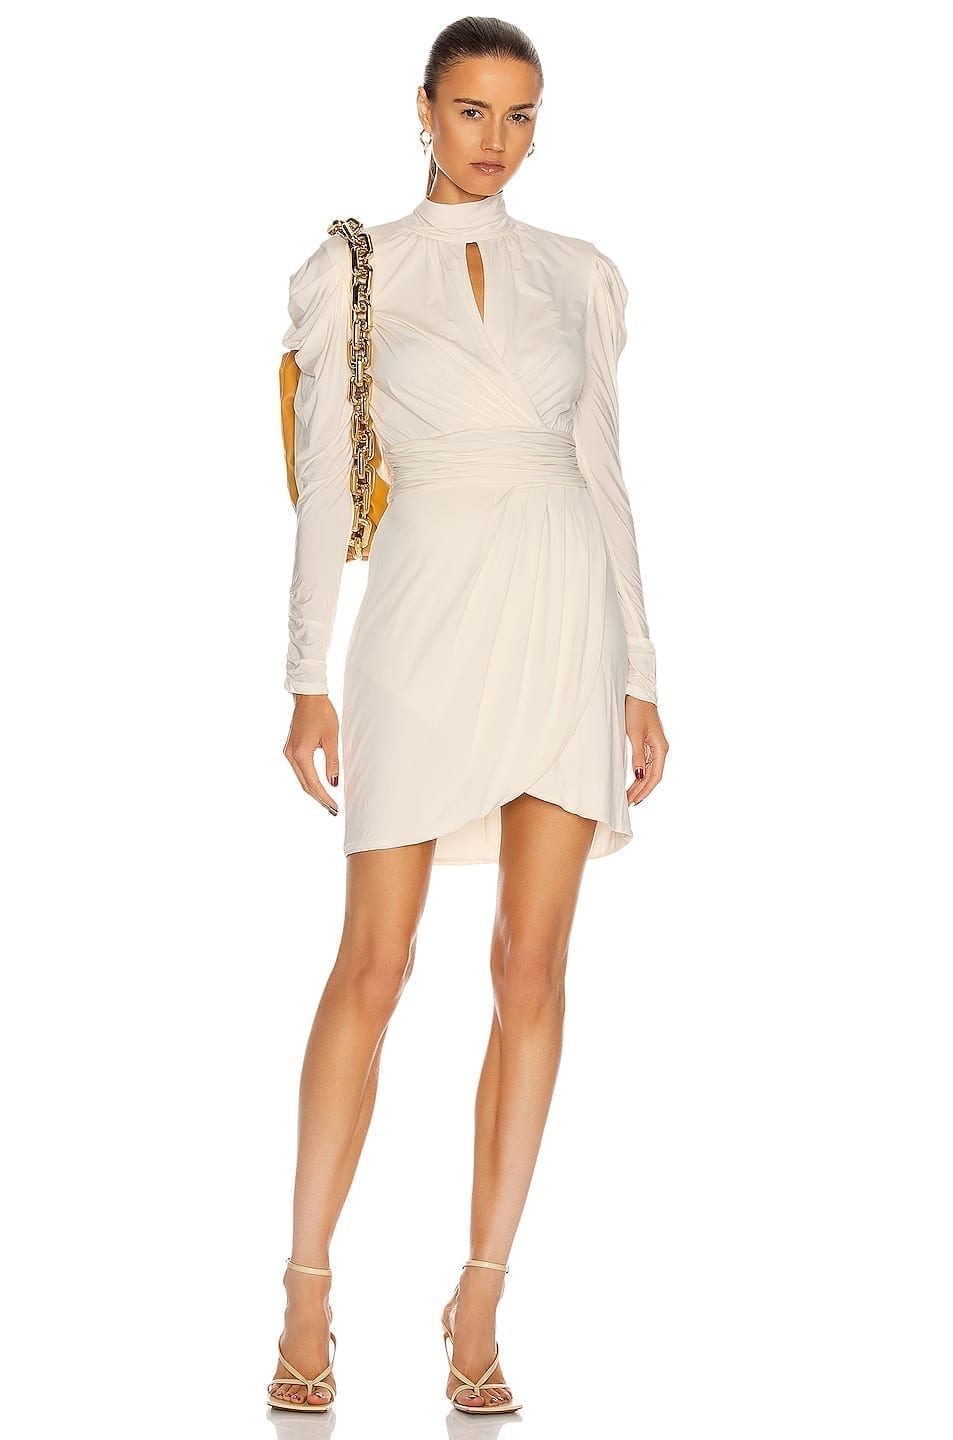 JONATHAN SIMKHAI STANDARD Mockneck Mini Dress